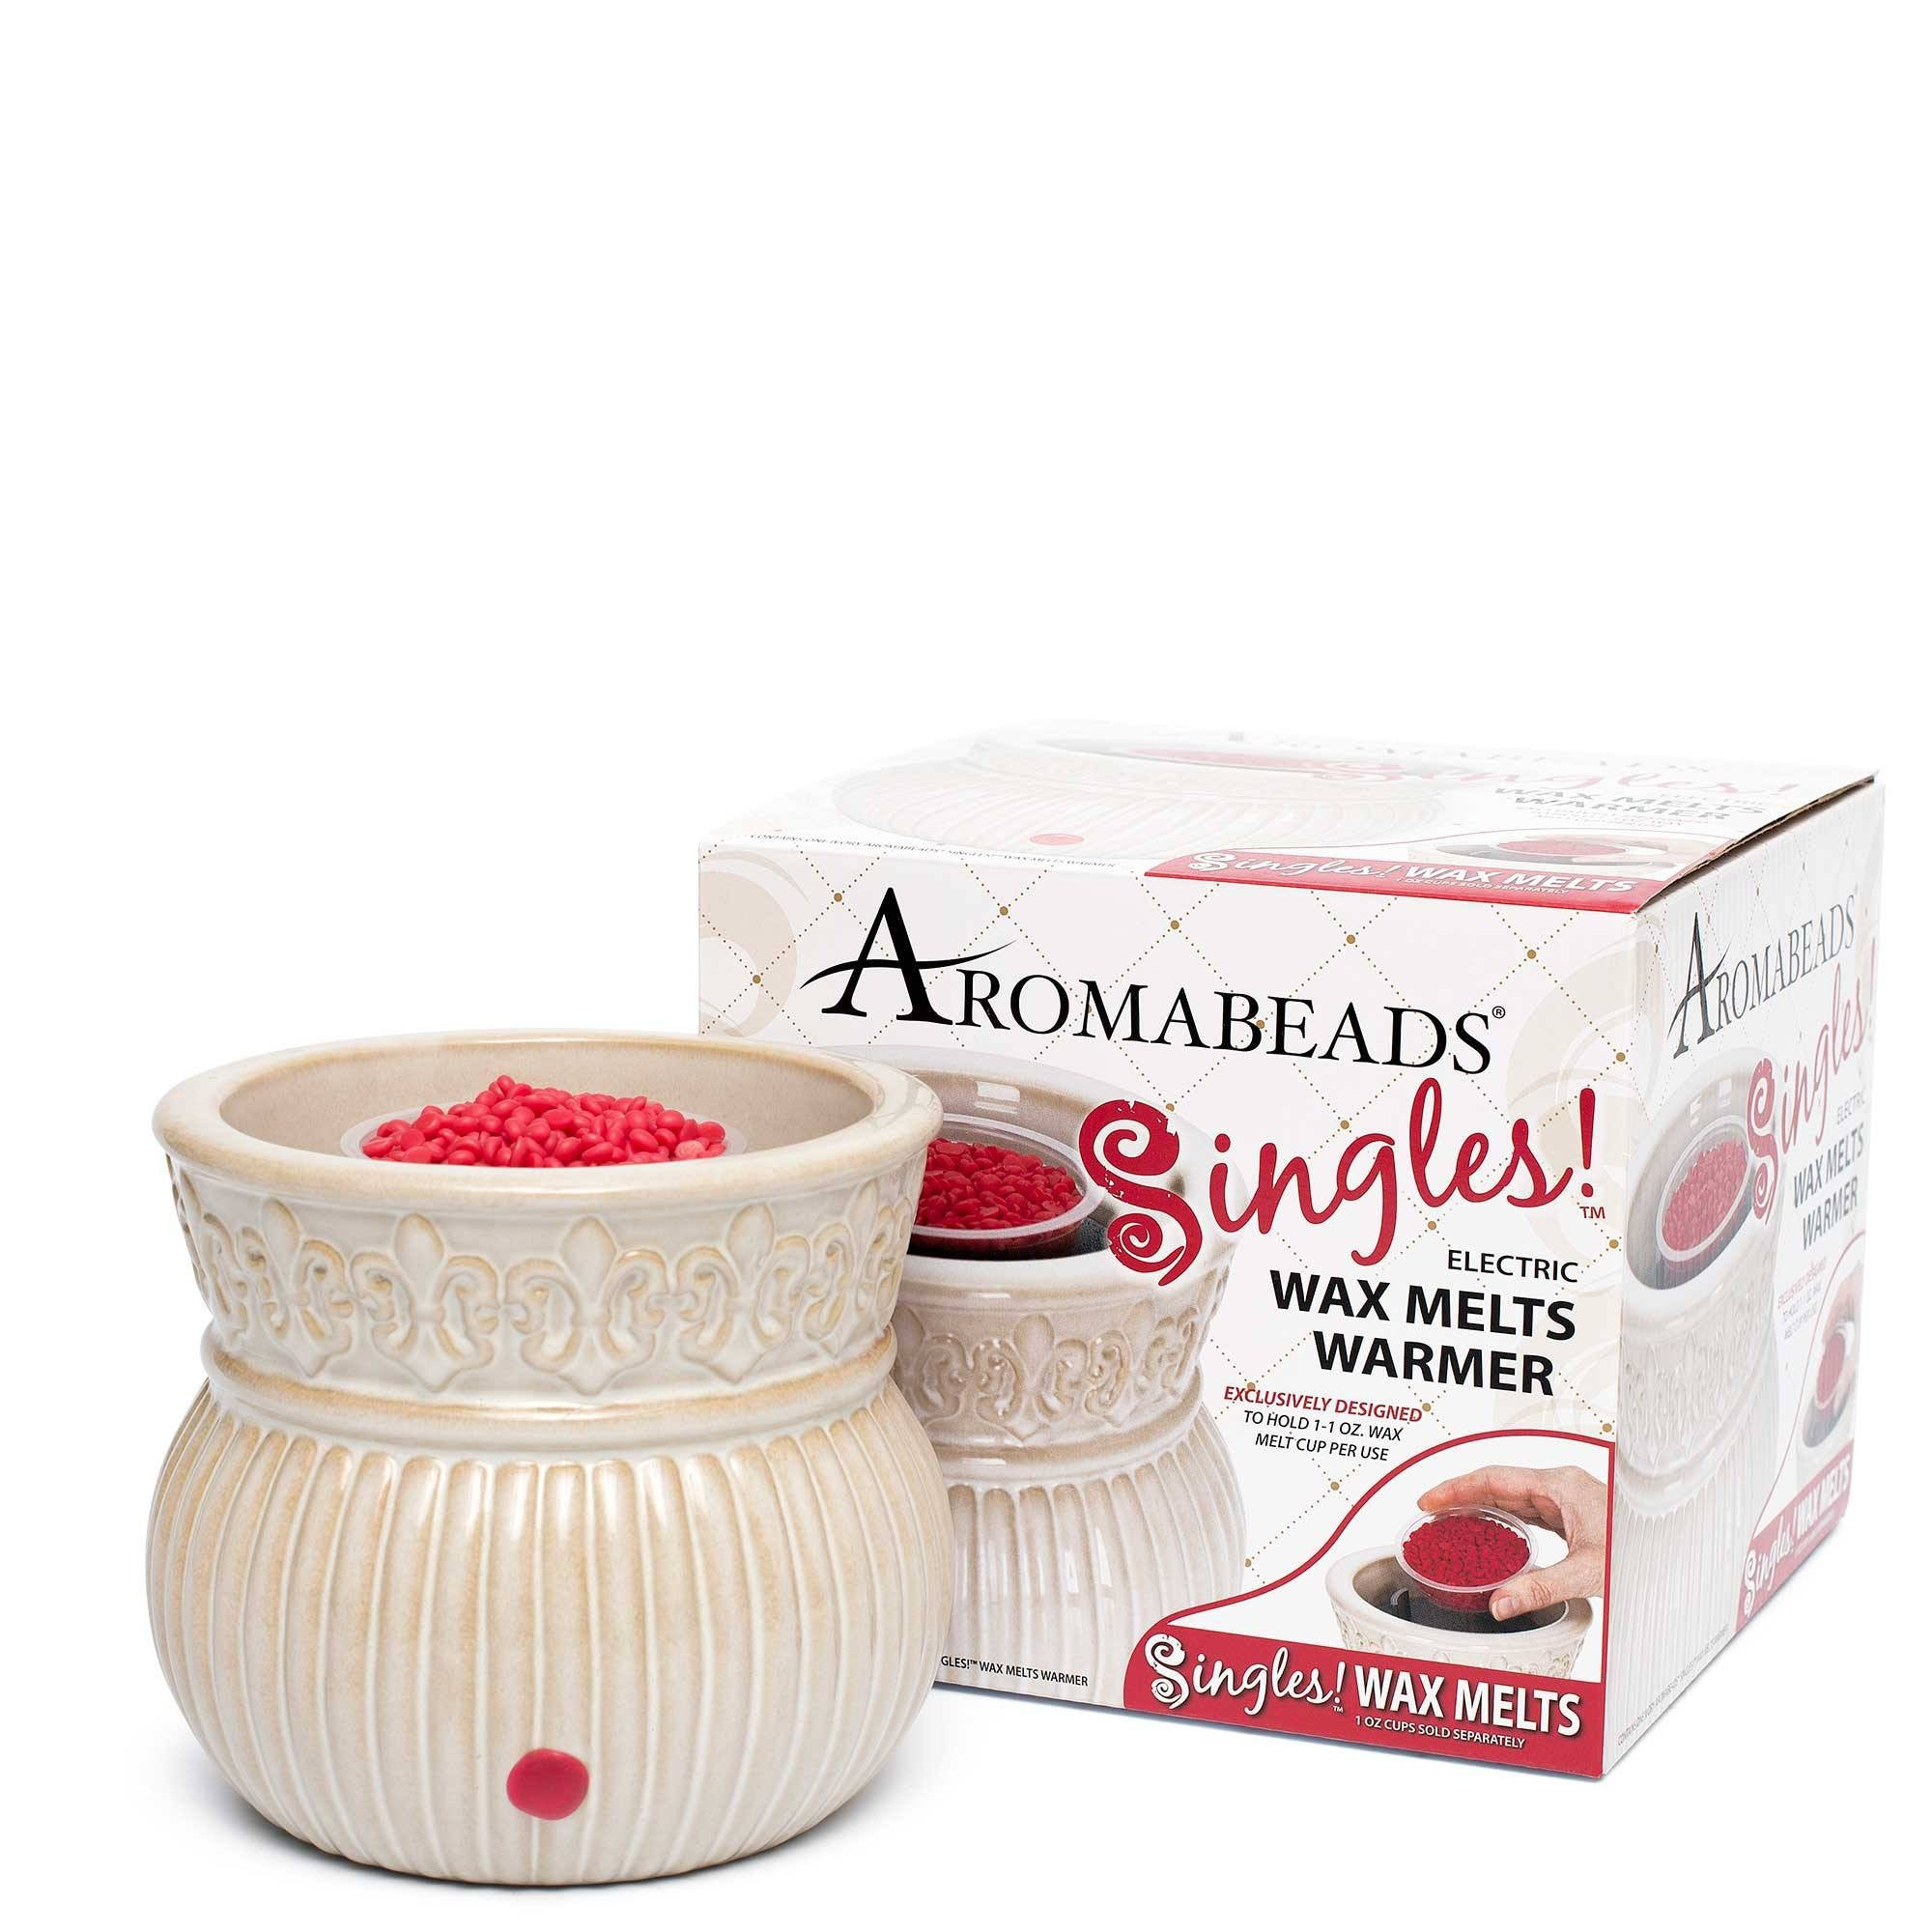 Aromabeads Singles Sweet Strawberry Preserves Scented Wax Melts Melts Candlemart.com $ 1.49